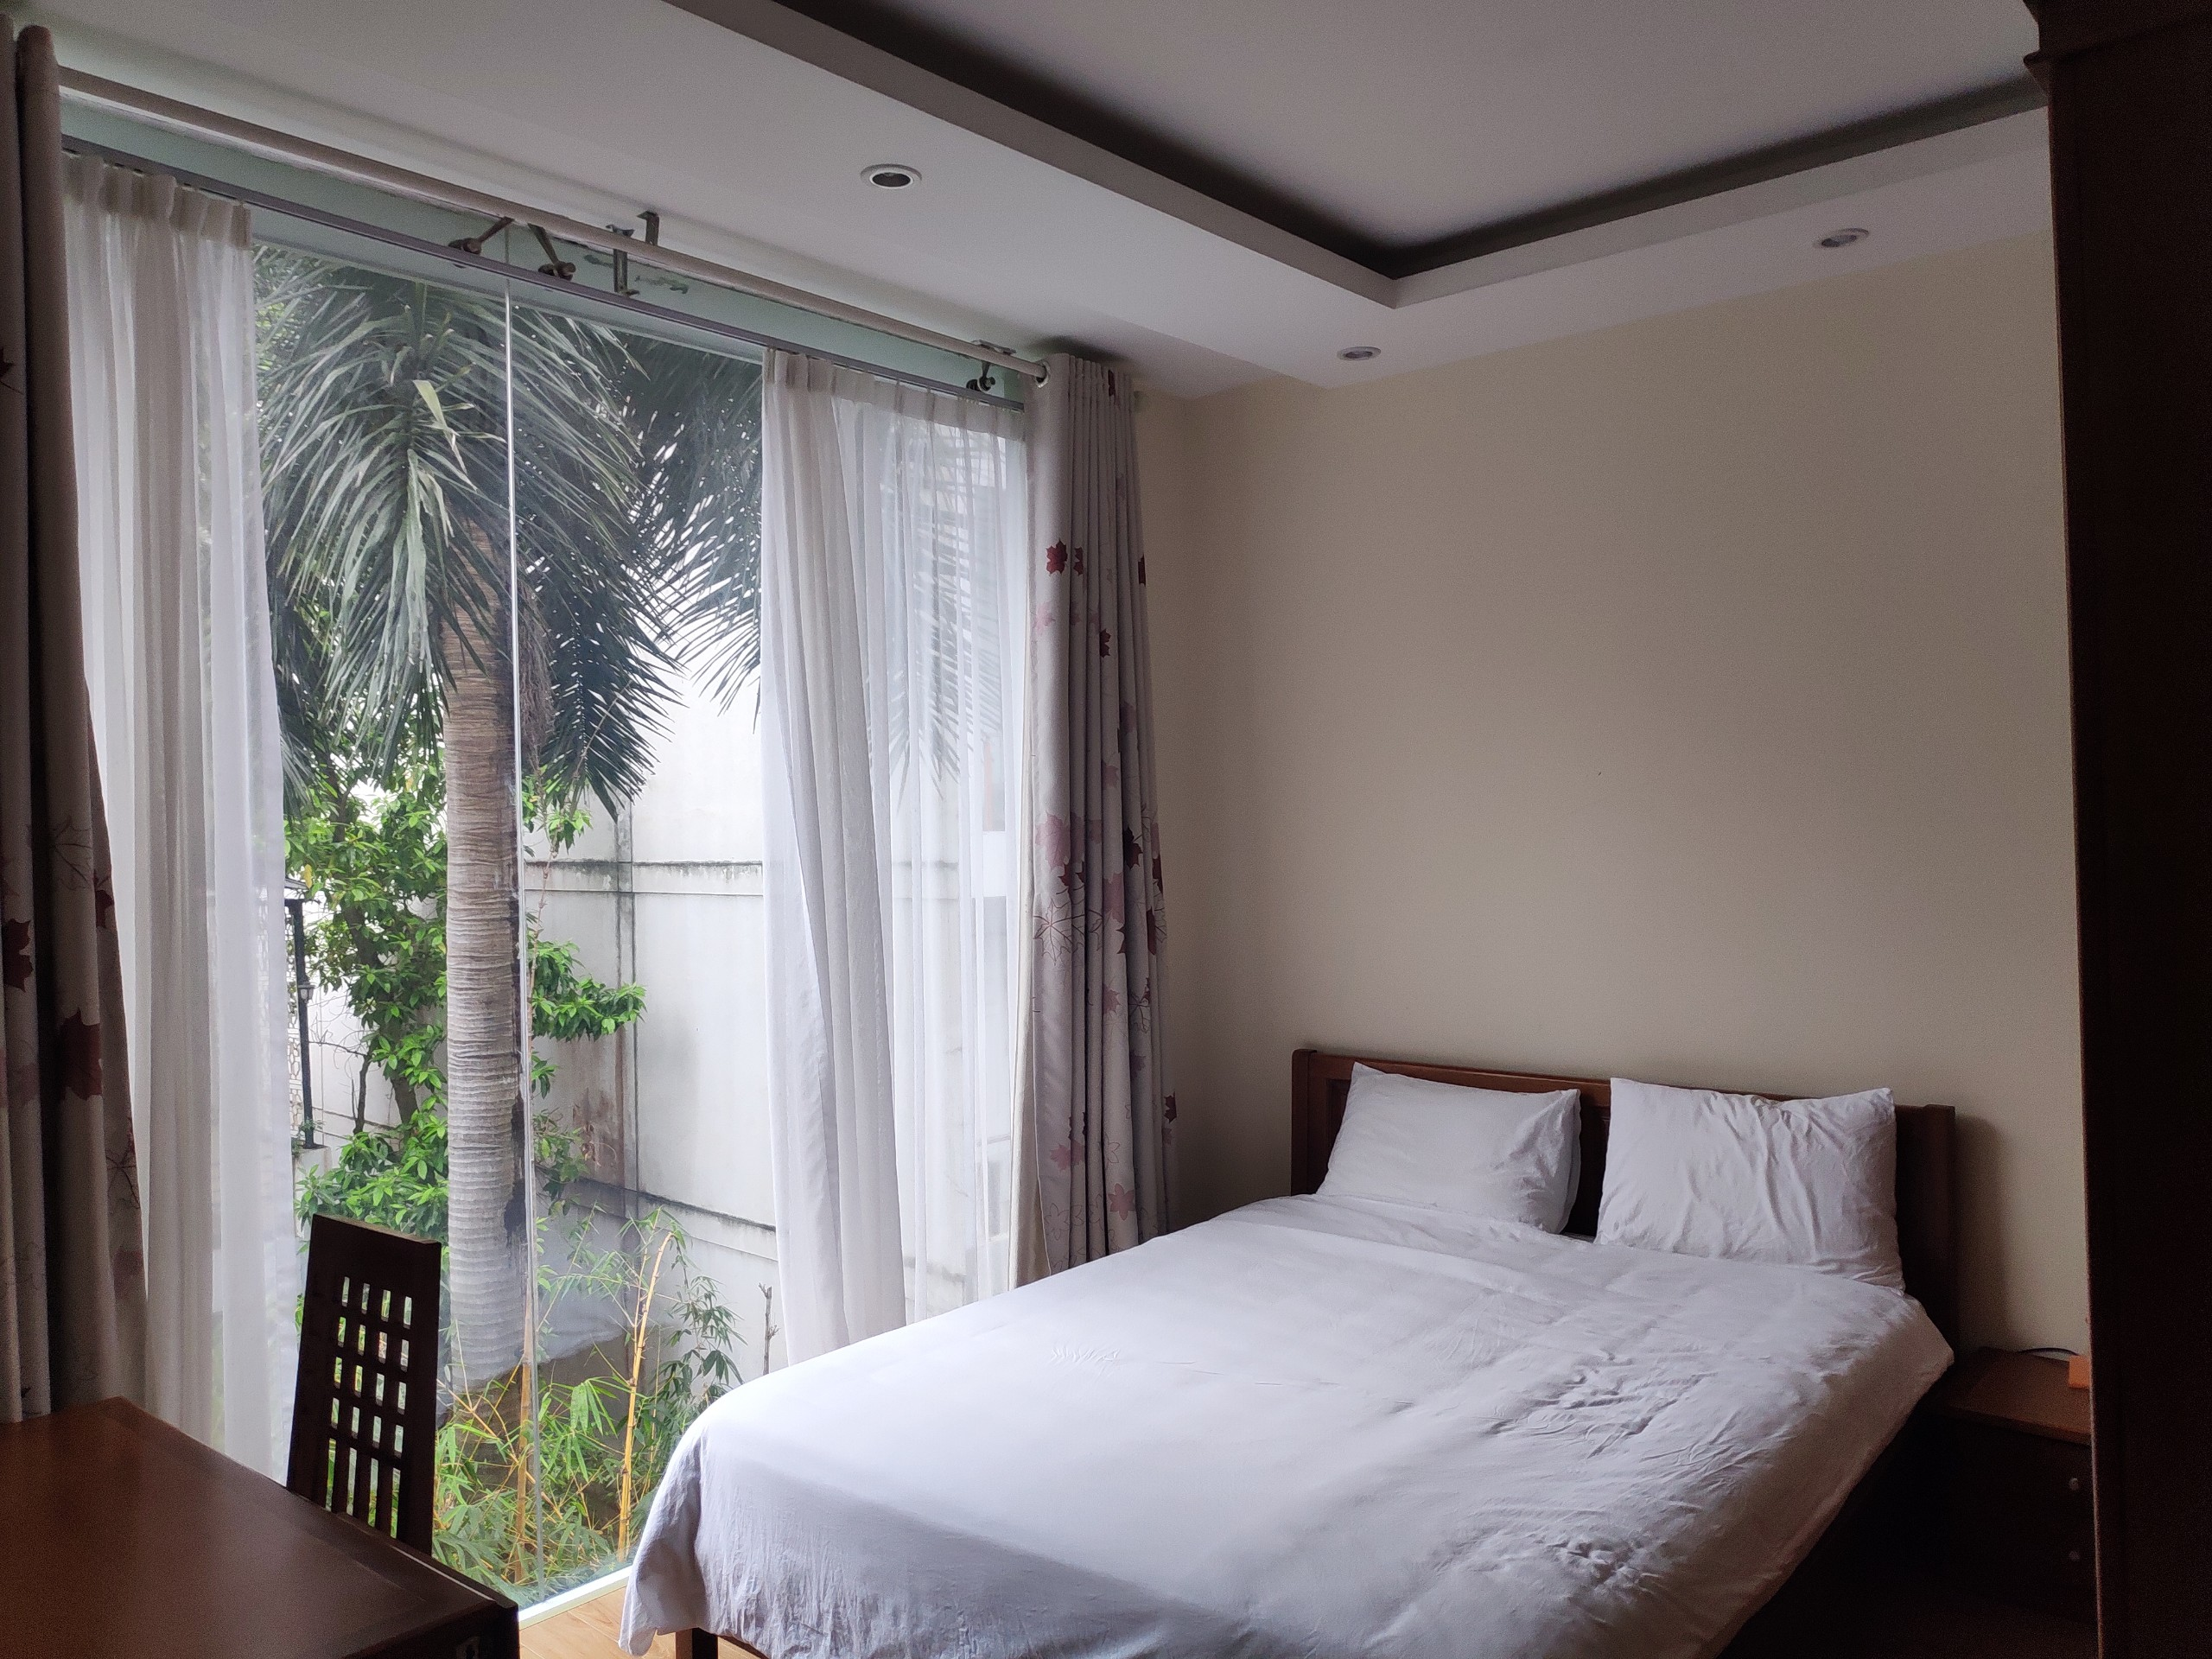 Serviced Apartments near Lotte center for rent